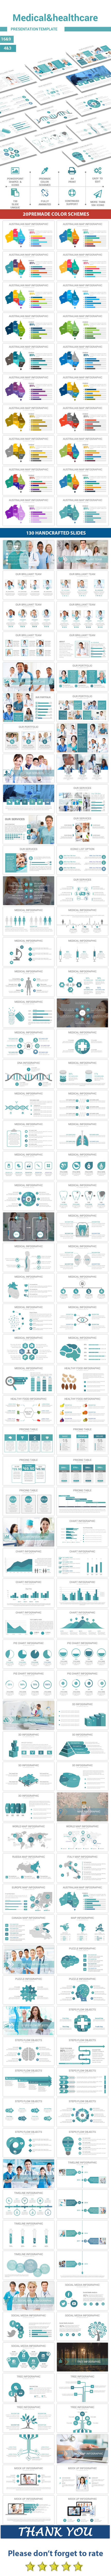 Medical and Healthcare PowerPoint Presentation Template - PowerPoint Templates Presentation Templates